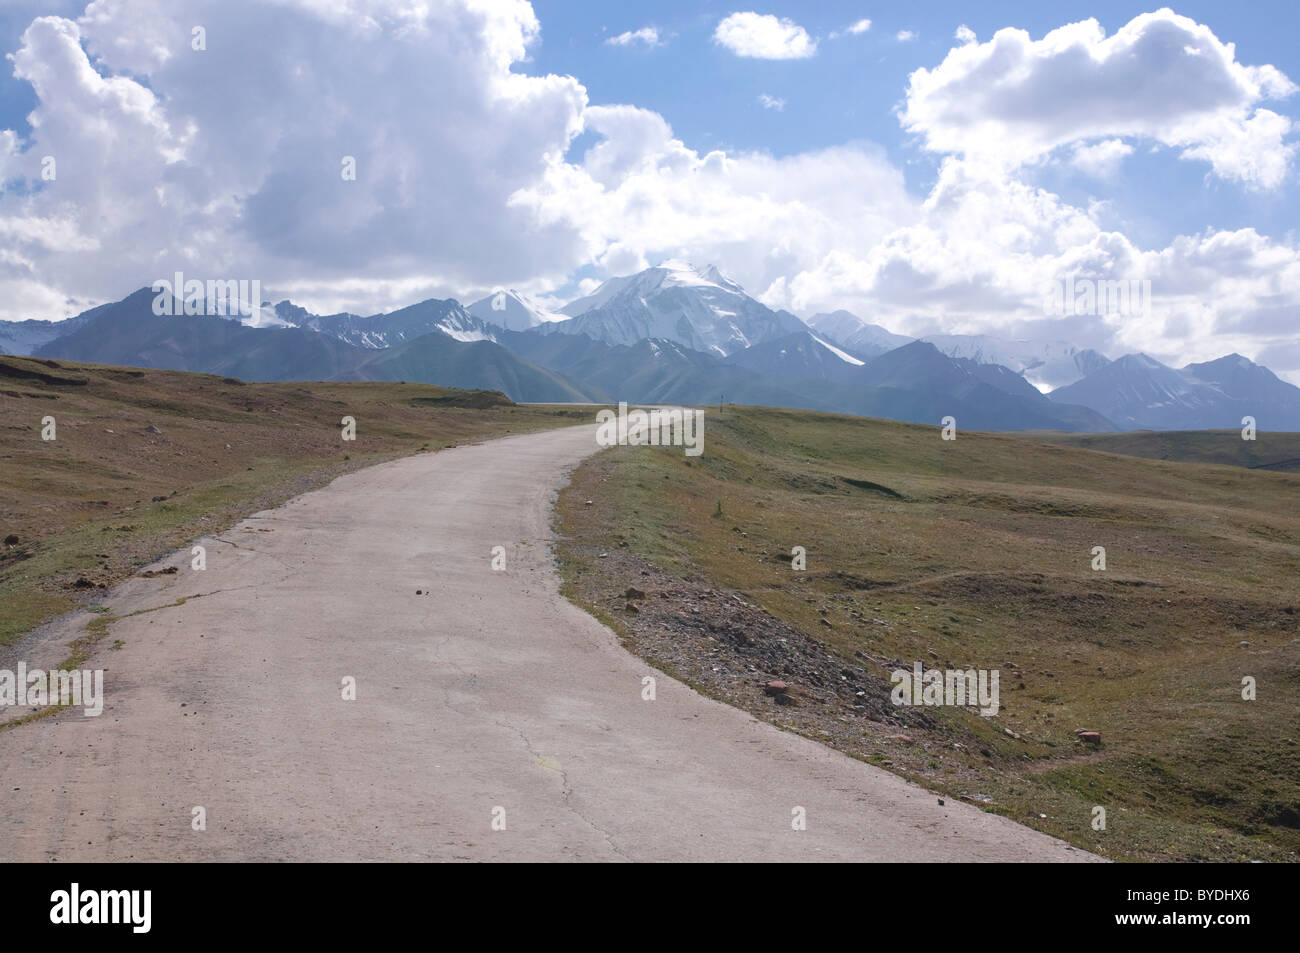 Highway leading into the mountains near Sary Tash, Kyrgyzstan, Central Asia Stock Photo